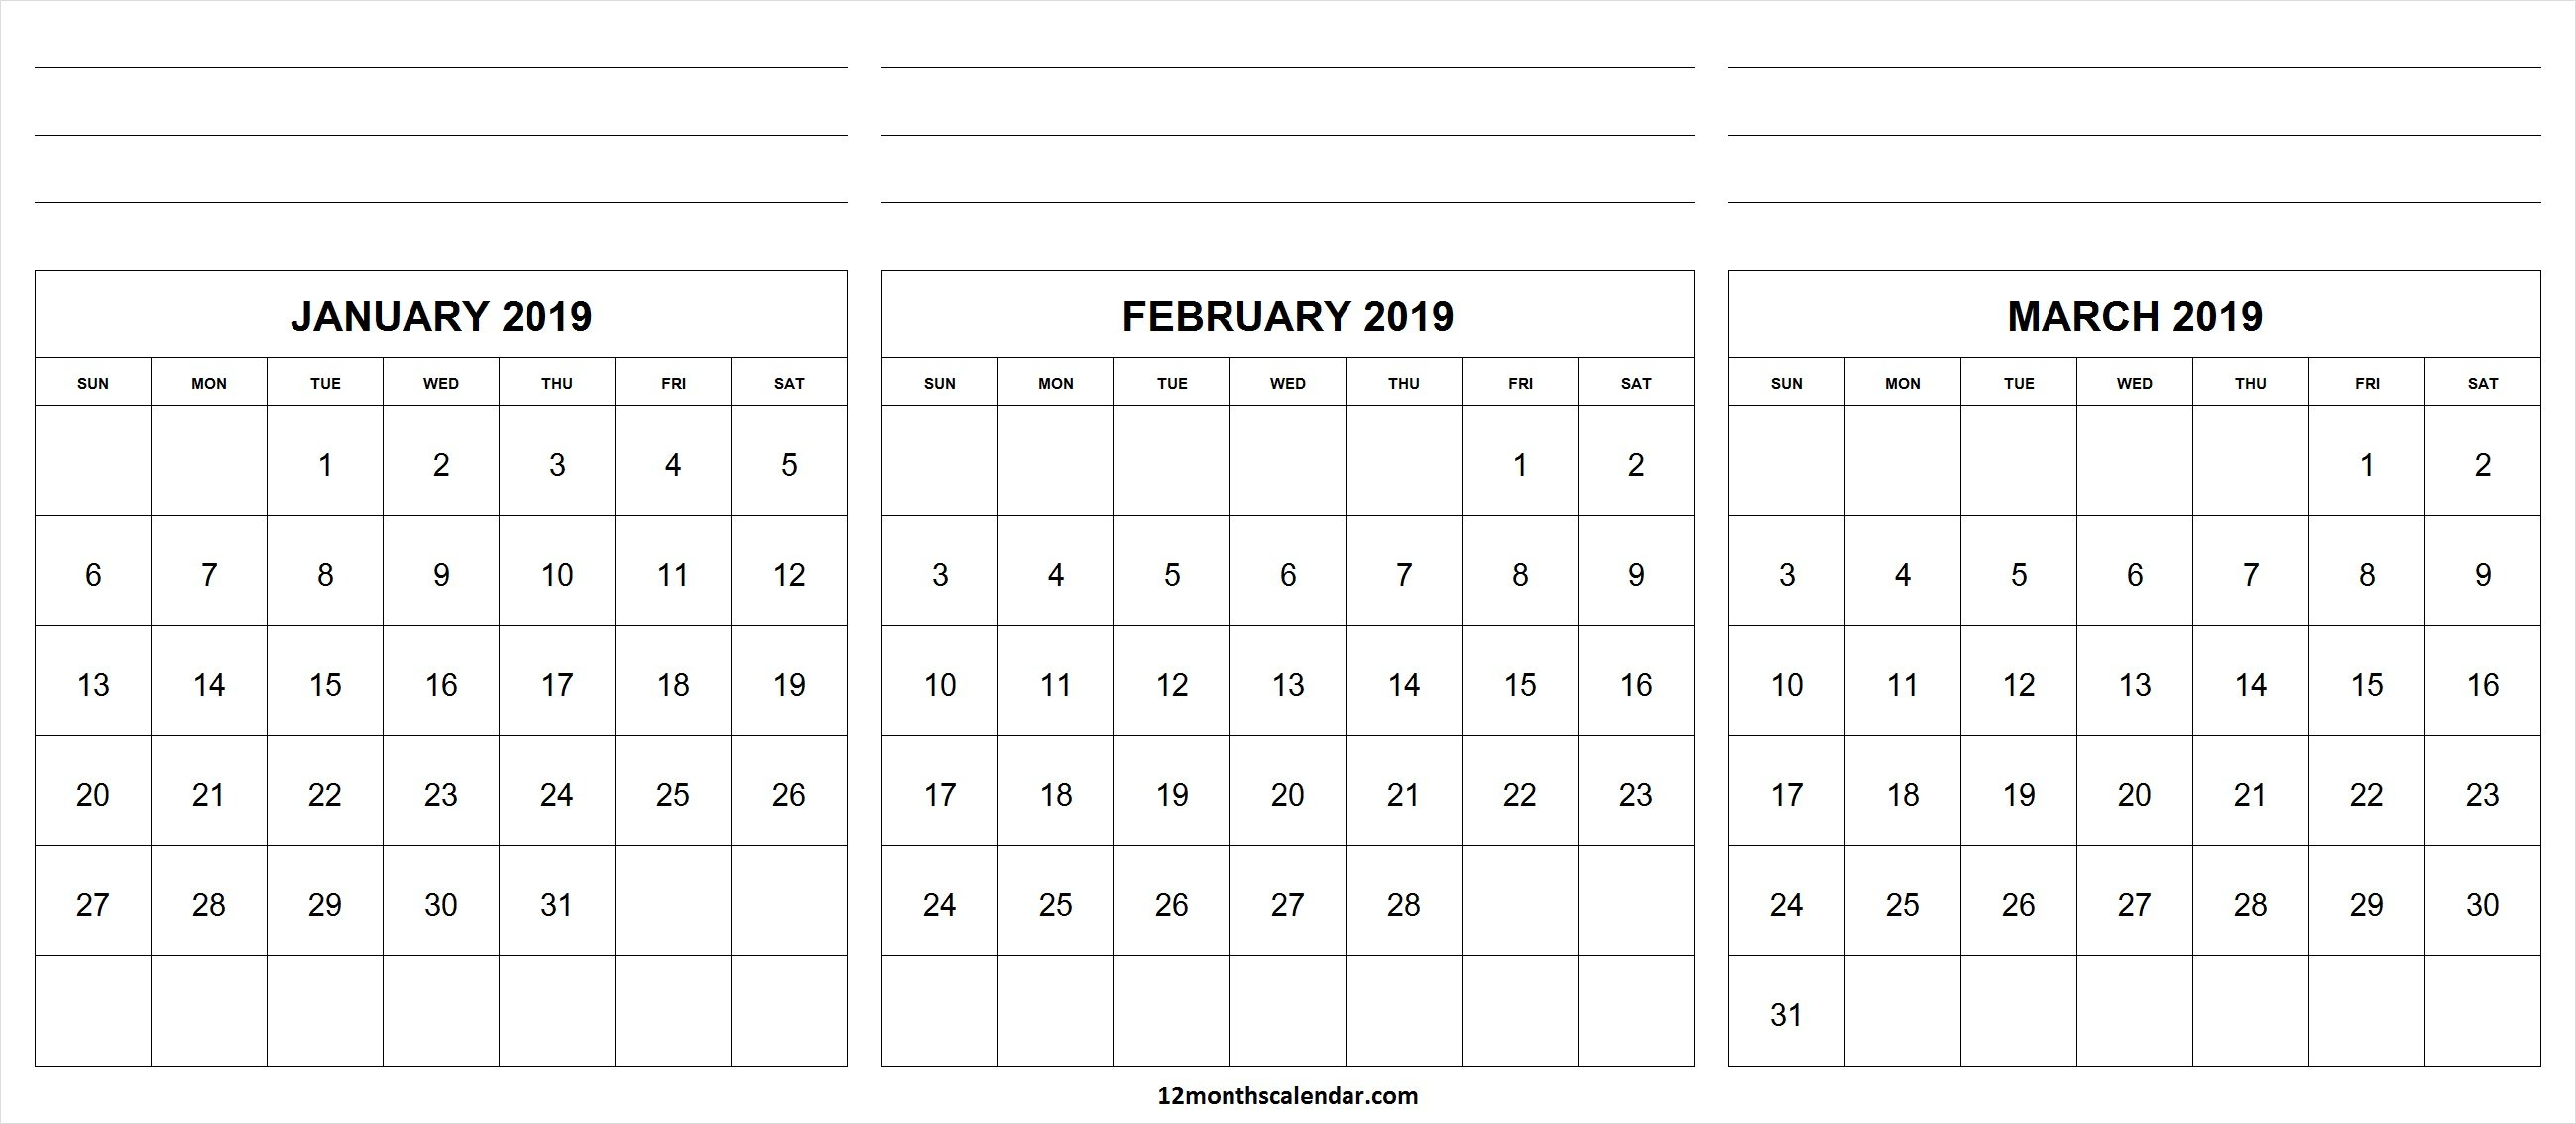 January February March 2019 Calendar With Notes | 12 Month Calendar Calendar 2019 January February March